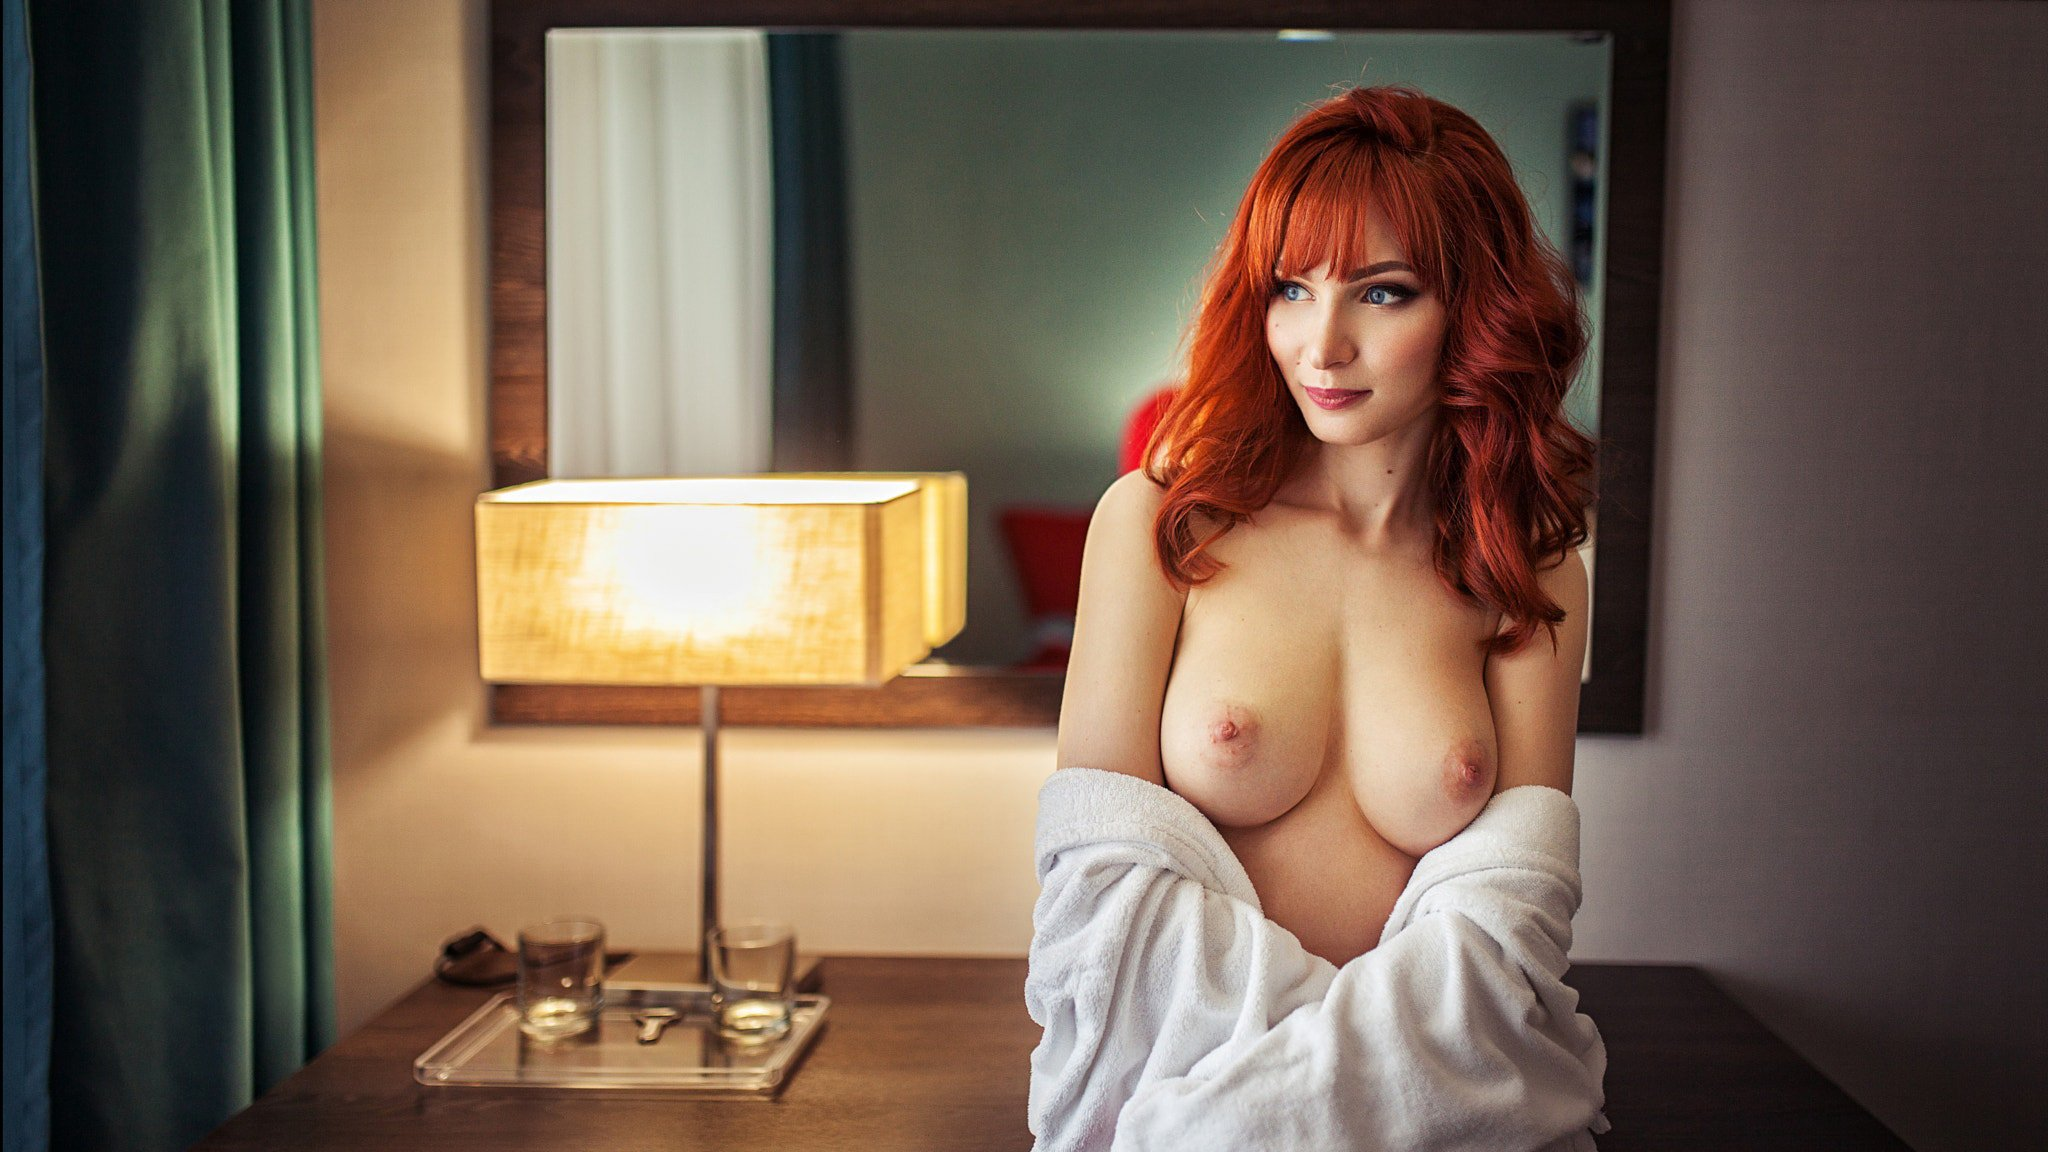 Hot redhead big tits and hairy pussy